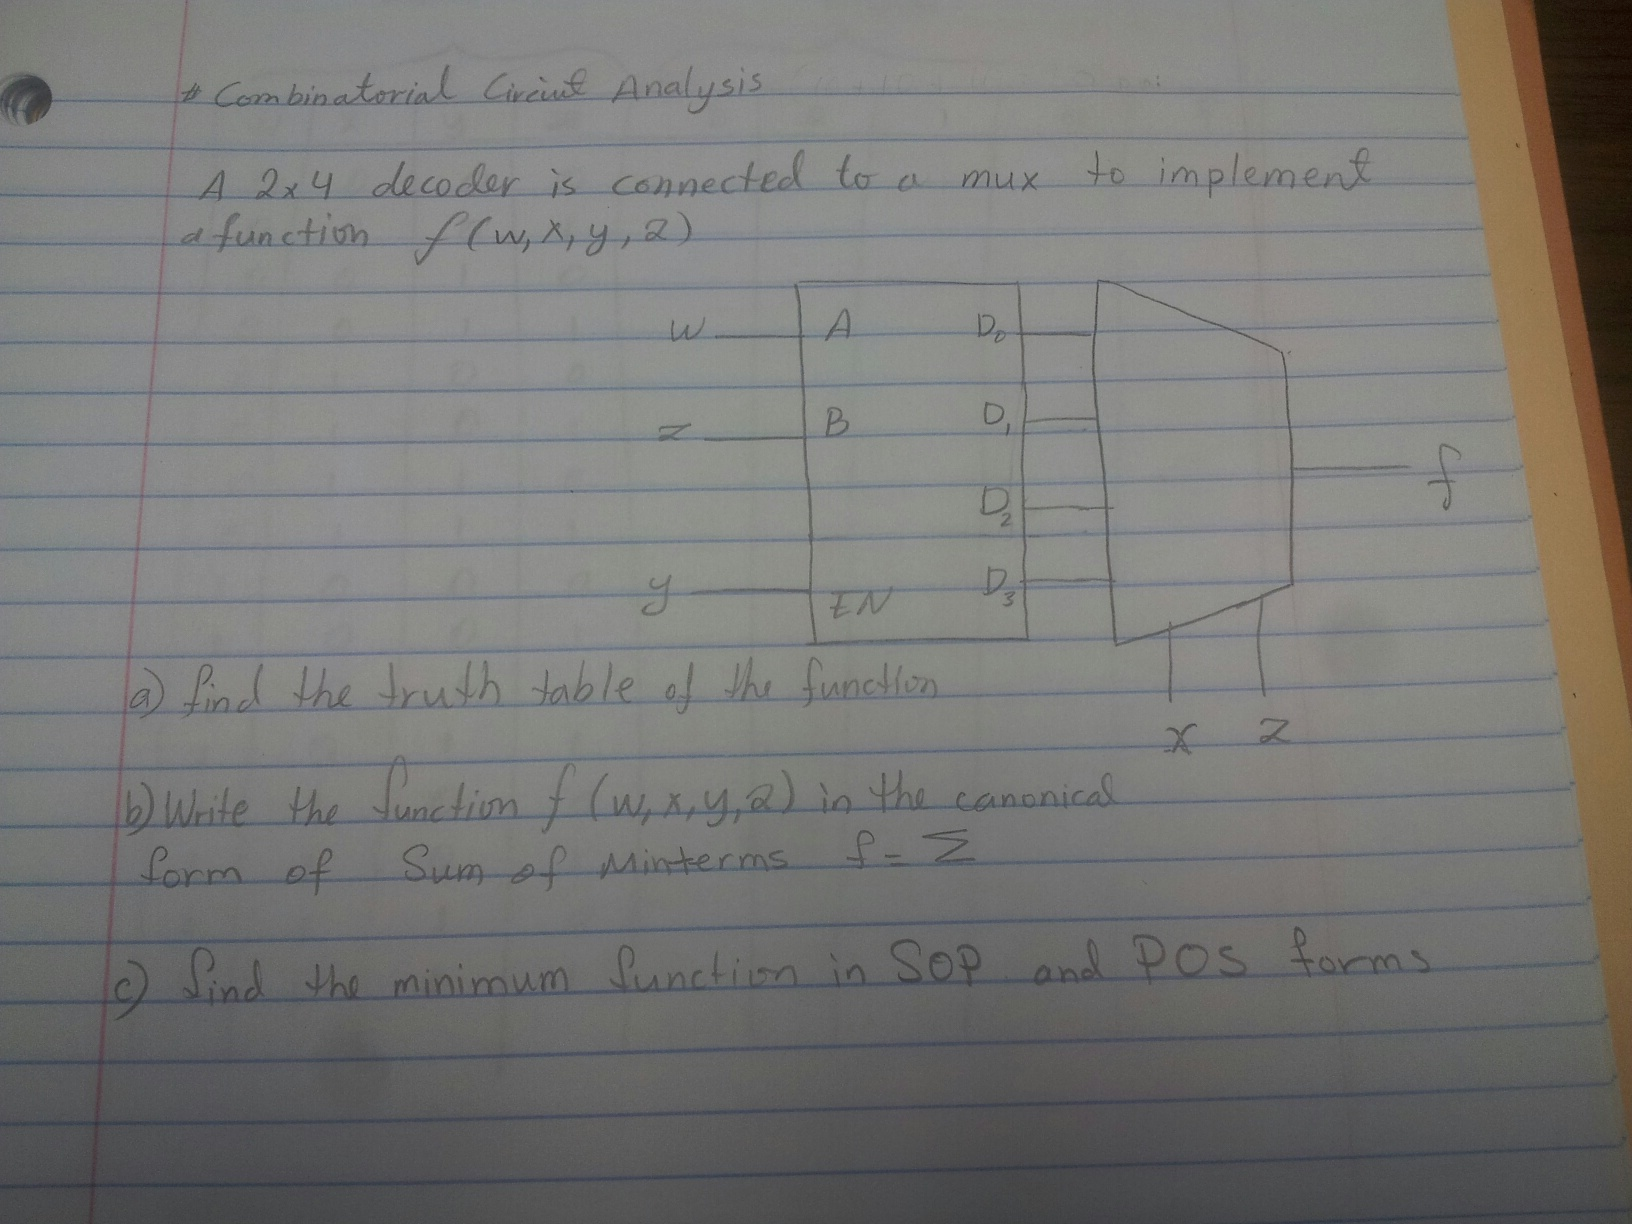 Combinatorial Circuit Analysis A 2 times 4 decode